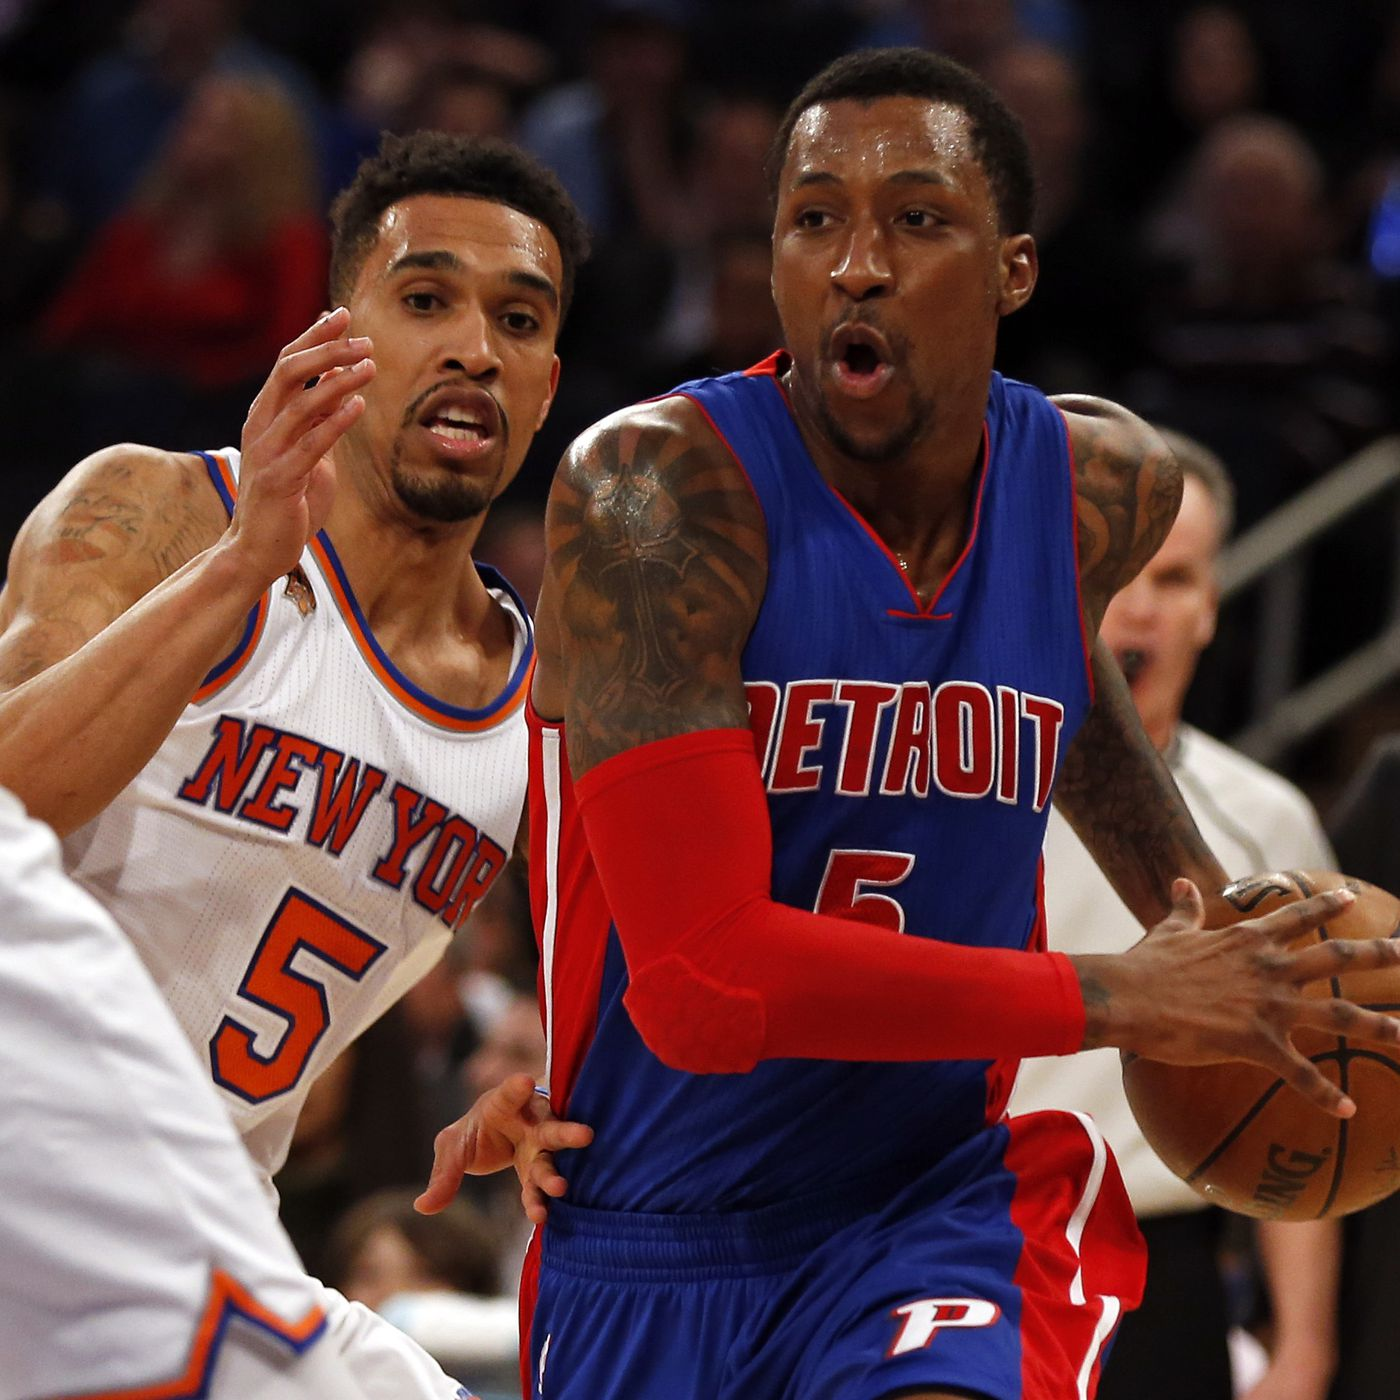 Kentavious Caldwell Pope Agrees To Sign With Lakers For One Year 18 Million Deal Per Report